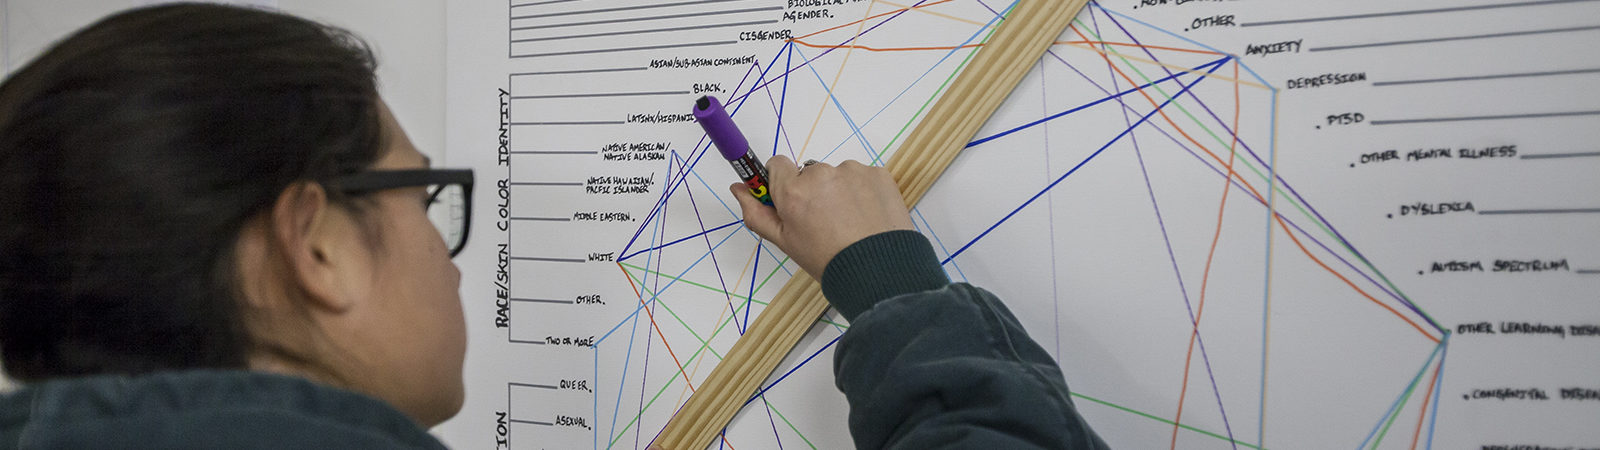 Northland College student adds mark to identity wheel